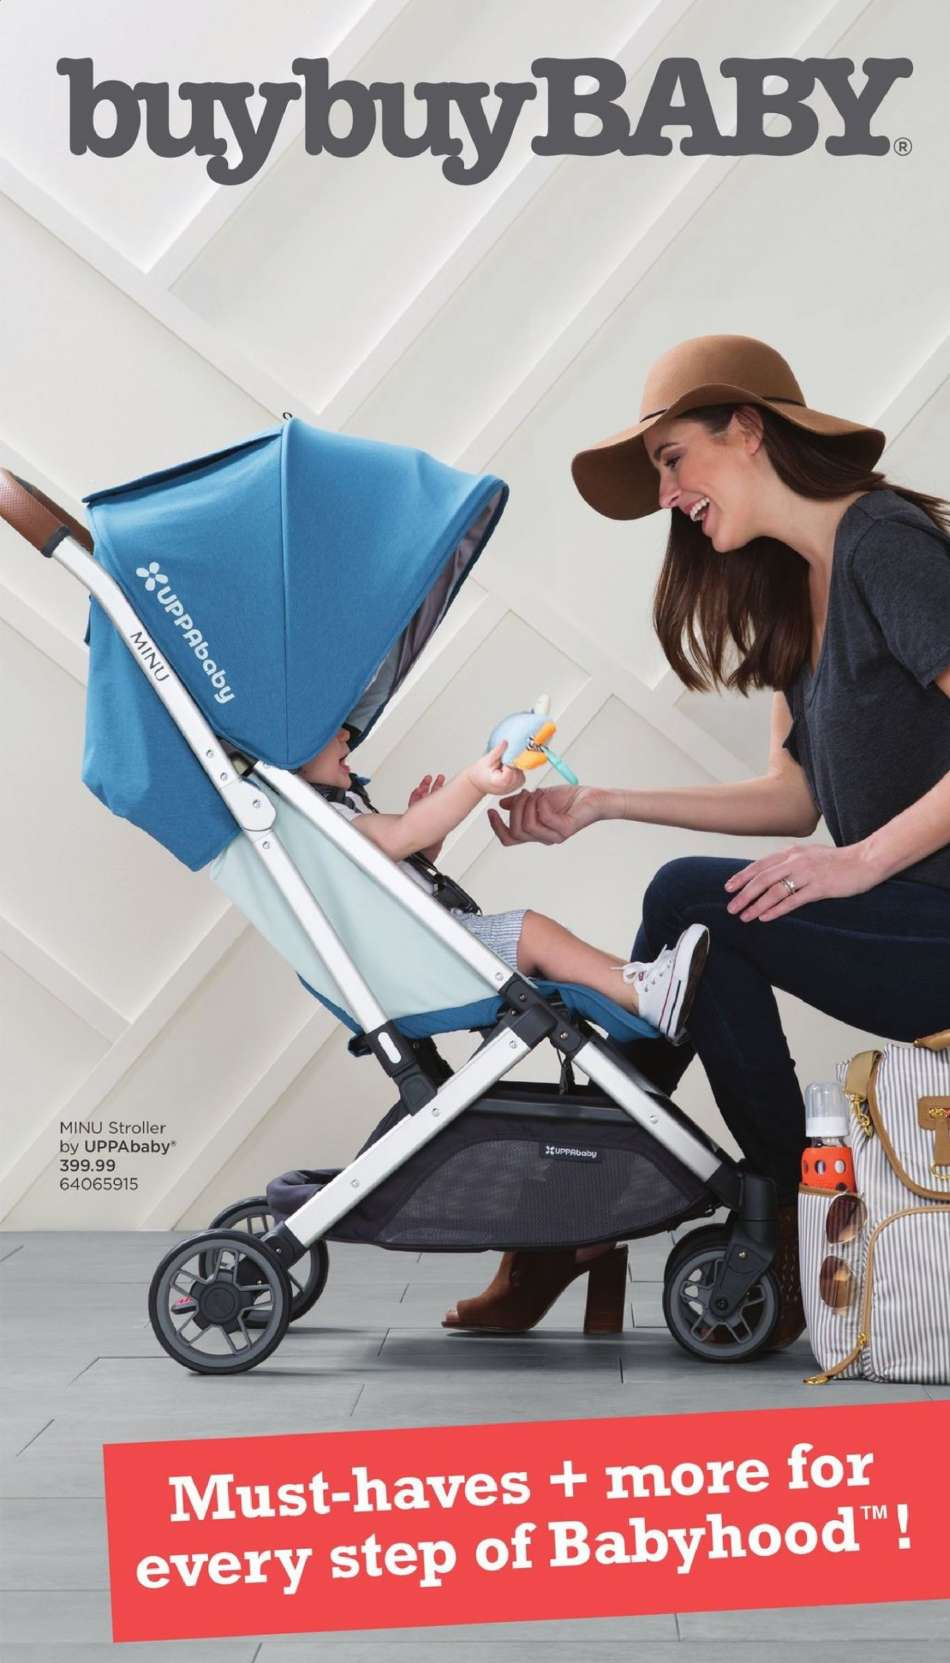 fe78e2d6b479d buybuy BABY Flyer - 03.08.2019 - 06.30.2019 - Sales products - stroller